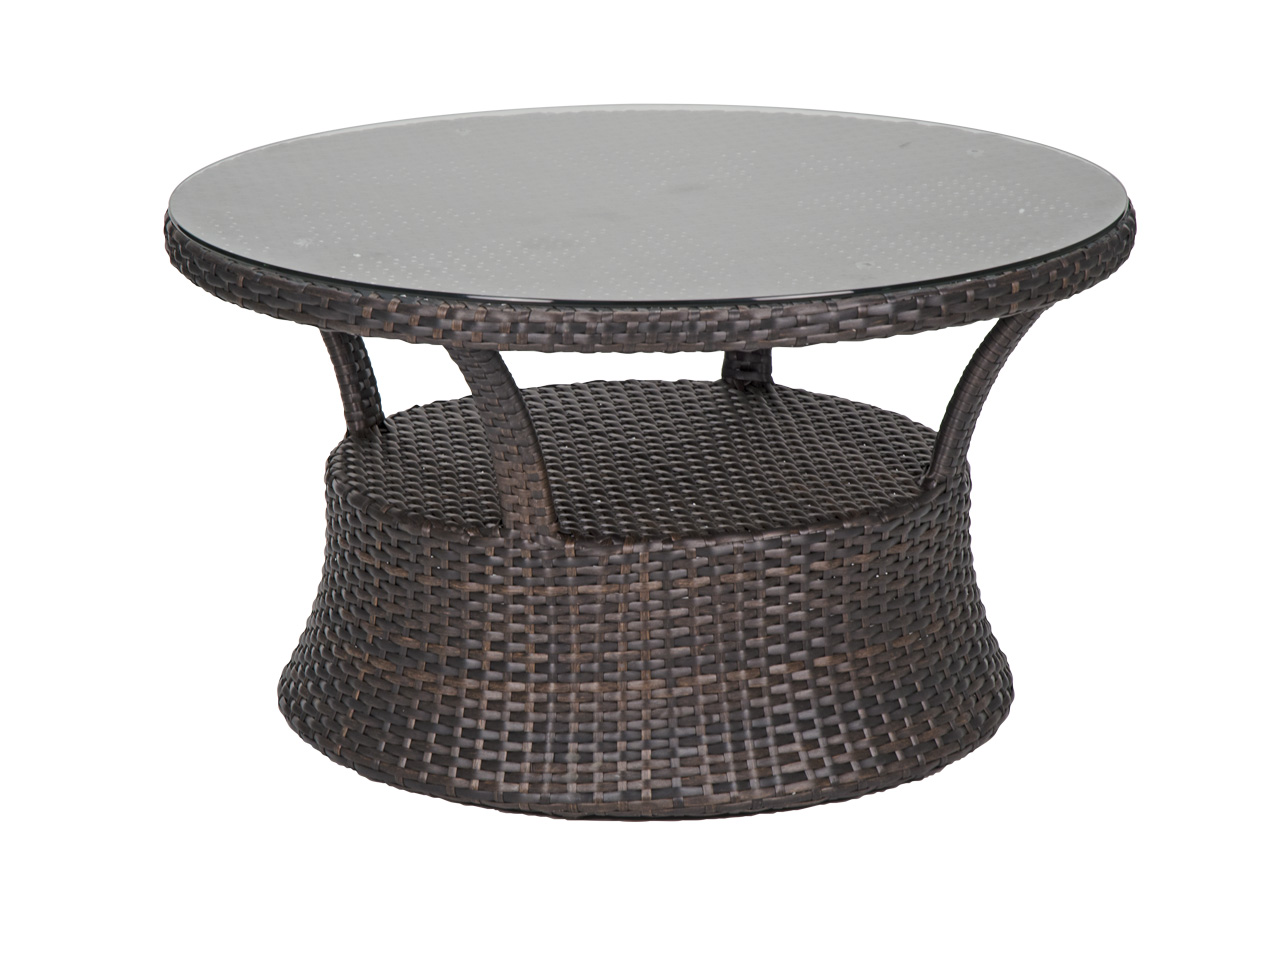 coffee and side tables fortunoff backyard wickr outdoor table aluminum san lucas round woven resin wicker glass top conversation chess maple grey linen tablecloth white high gloss